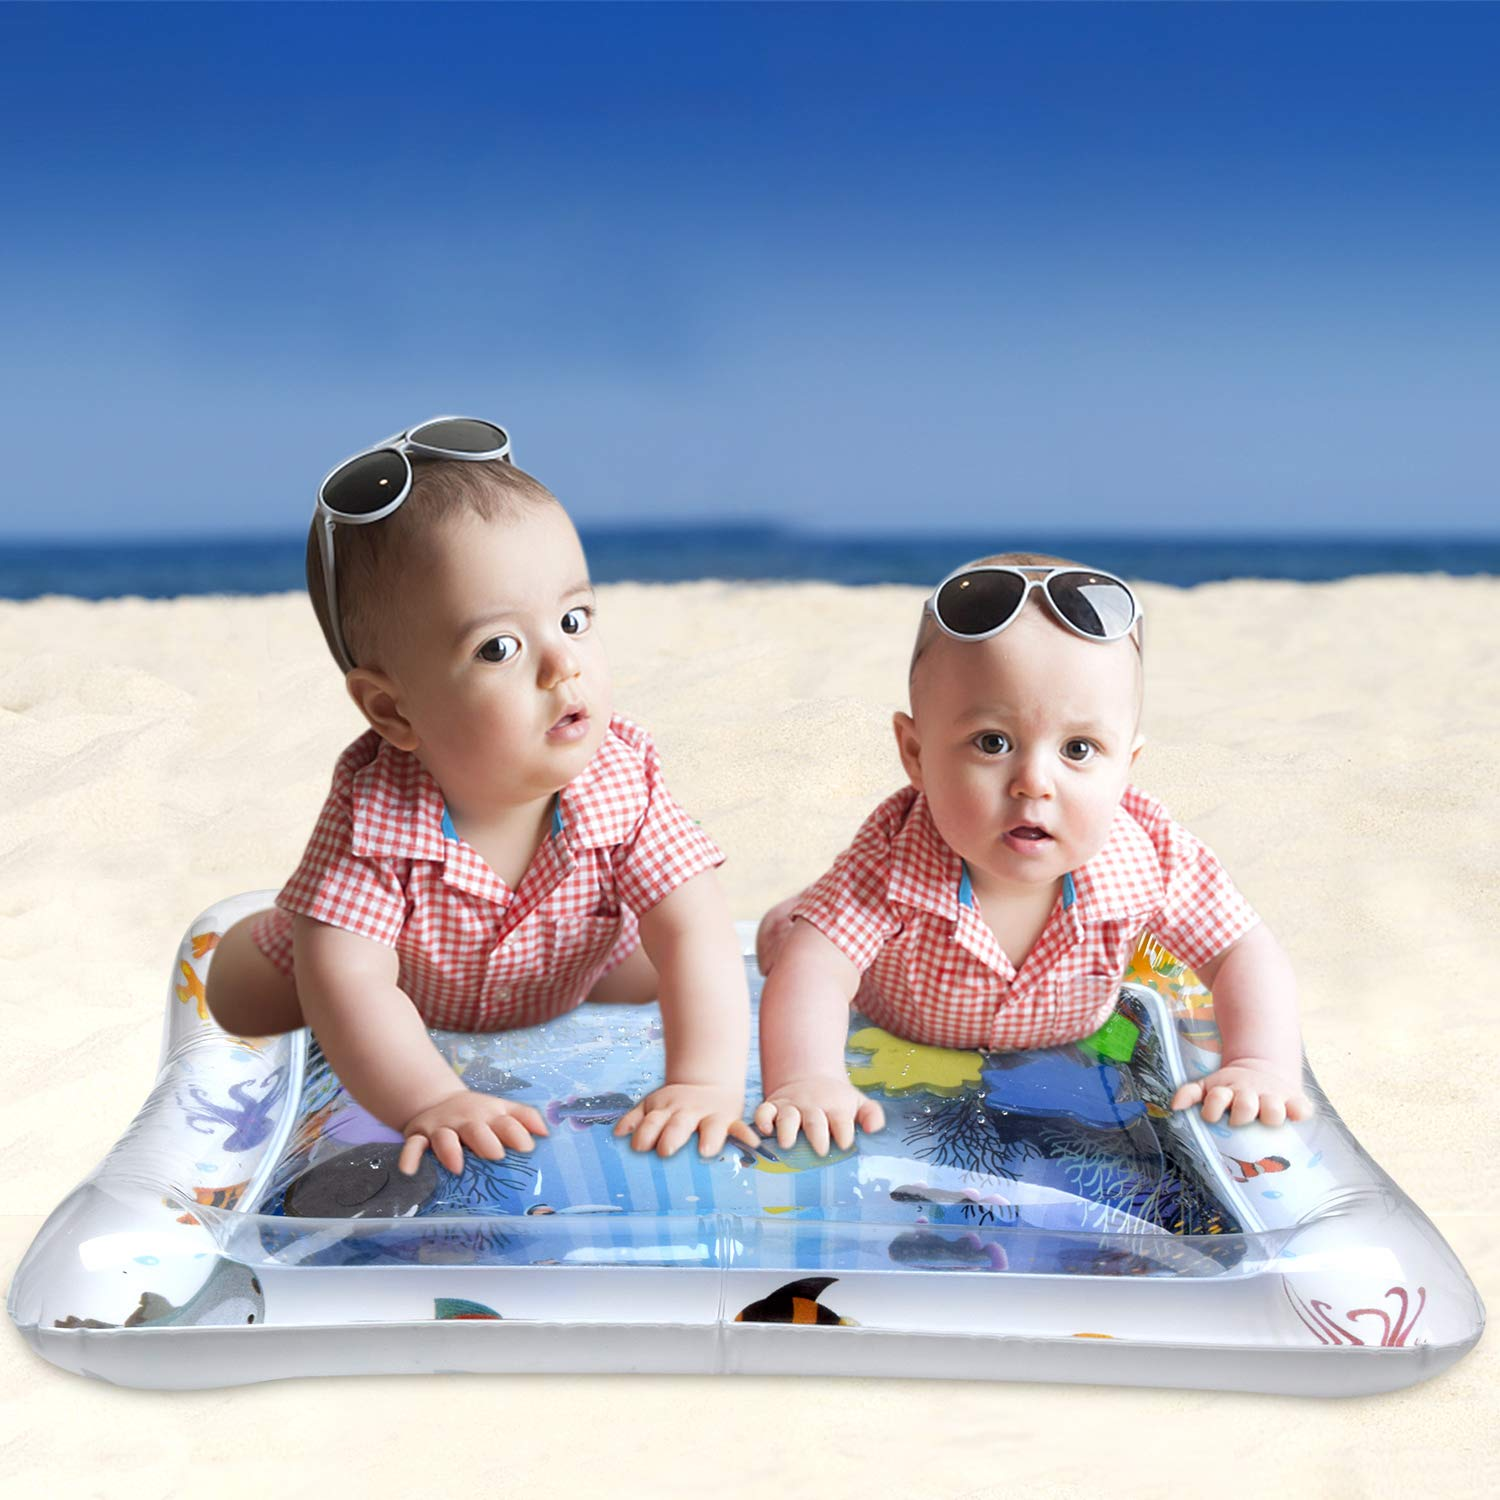 Tummy Time Water Mat Inflatable Water Play Mat for Infants /& Toddlers is The Perfect Fun time Play Activity Center for Babys Stimulation Growth-White